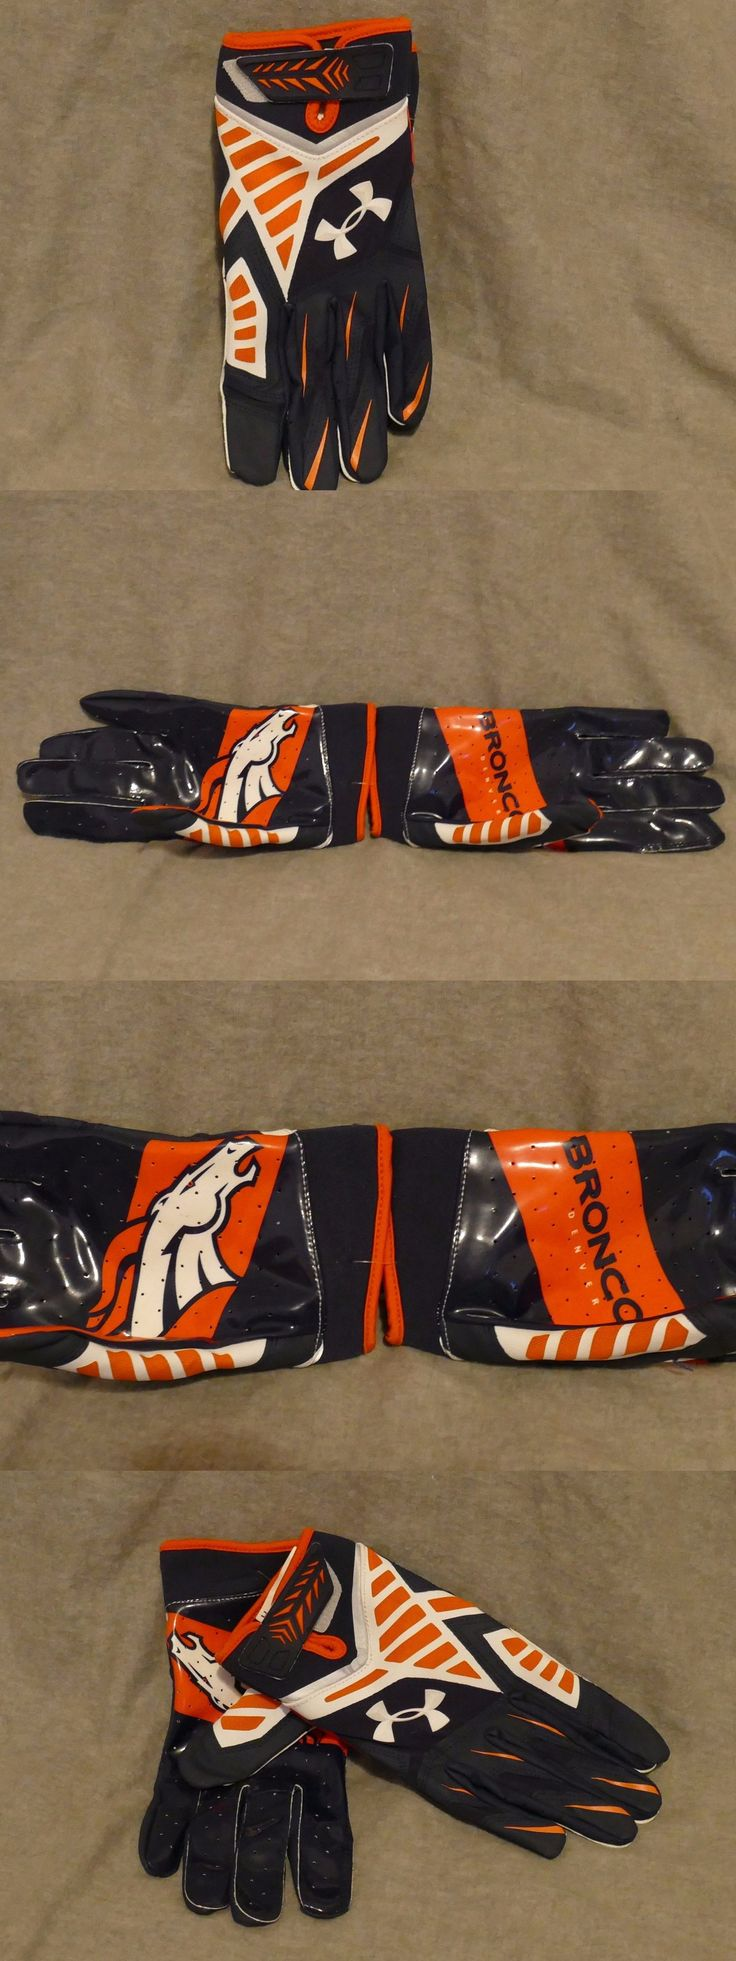 Gloves 159114: New Ua Under Armour Nfl Denver Broncos Football Receiver Gloves Sz Xl -> BUY IT NOW ONLY: $31.49 on eBay!